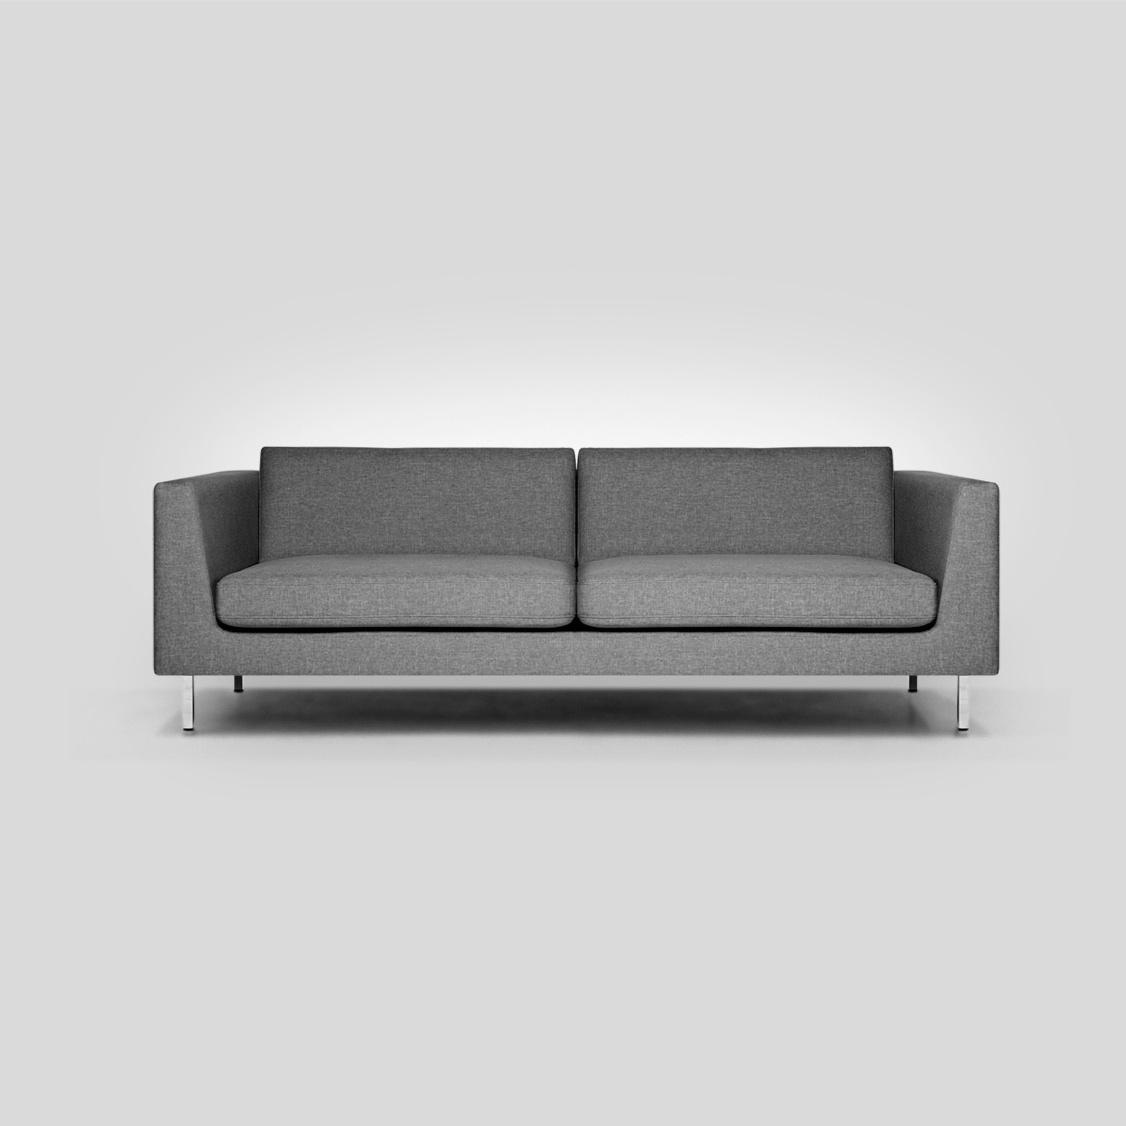 Flip Sofa   Client: Fab 2014  This sofa family was born from the business pain-point of SKU management. Clabots conducted extensive market research while designing this sofa, and he determined that most customers wanted one of three sofa sizes and a chair. Using this knowledge, Clabots designed a set of sofas with back cushions that could be configured to look minimal or mid-century, and two sets of legs from which to choose.